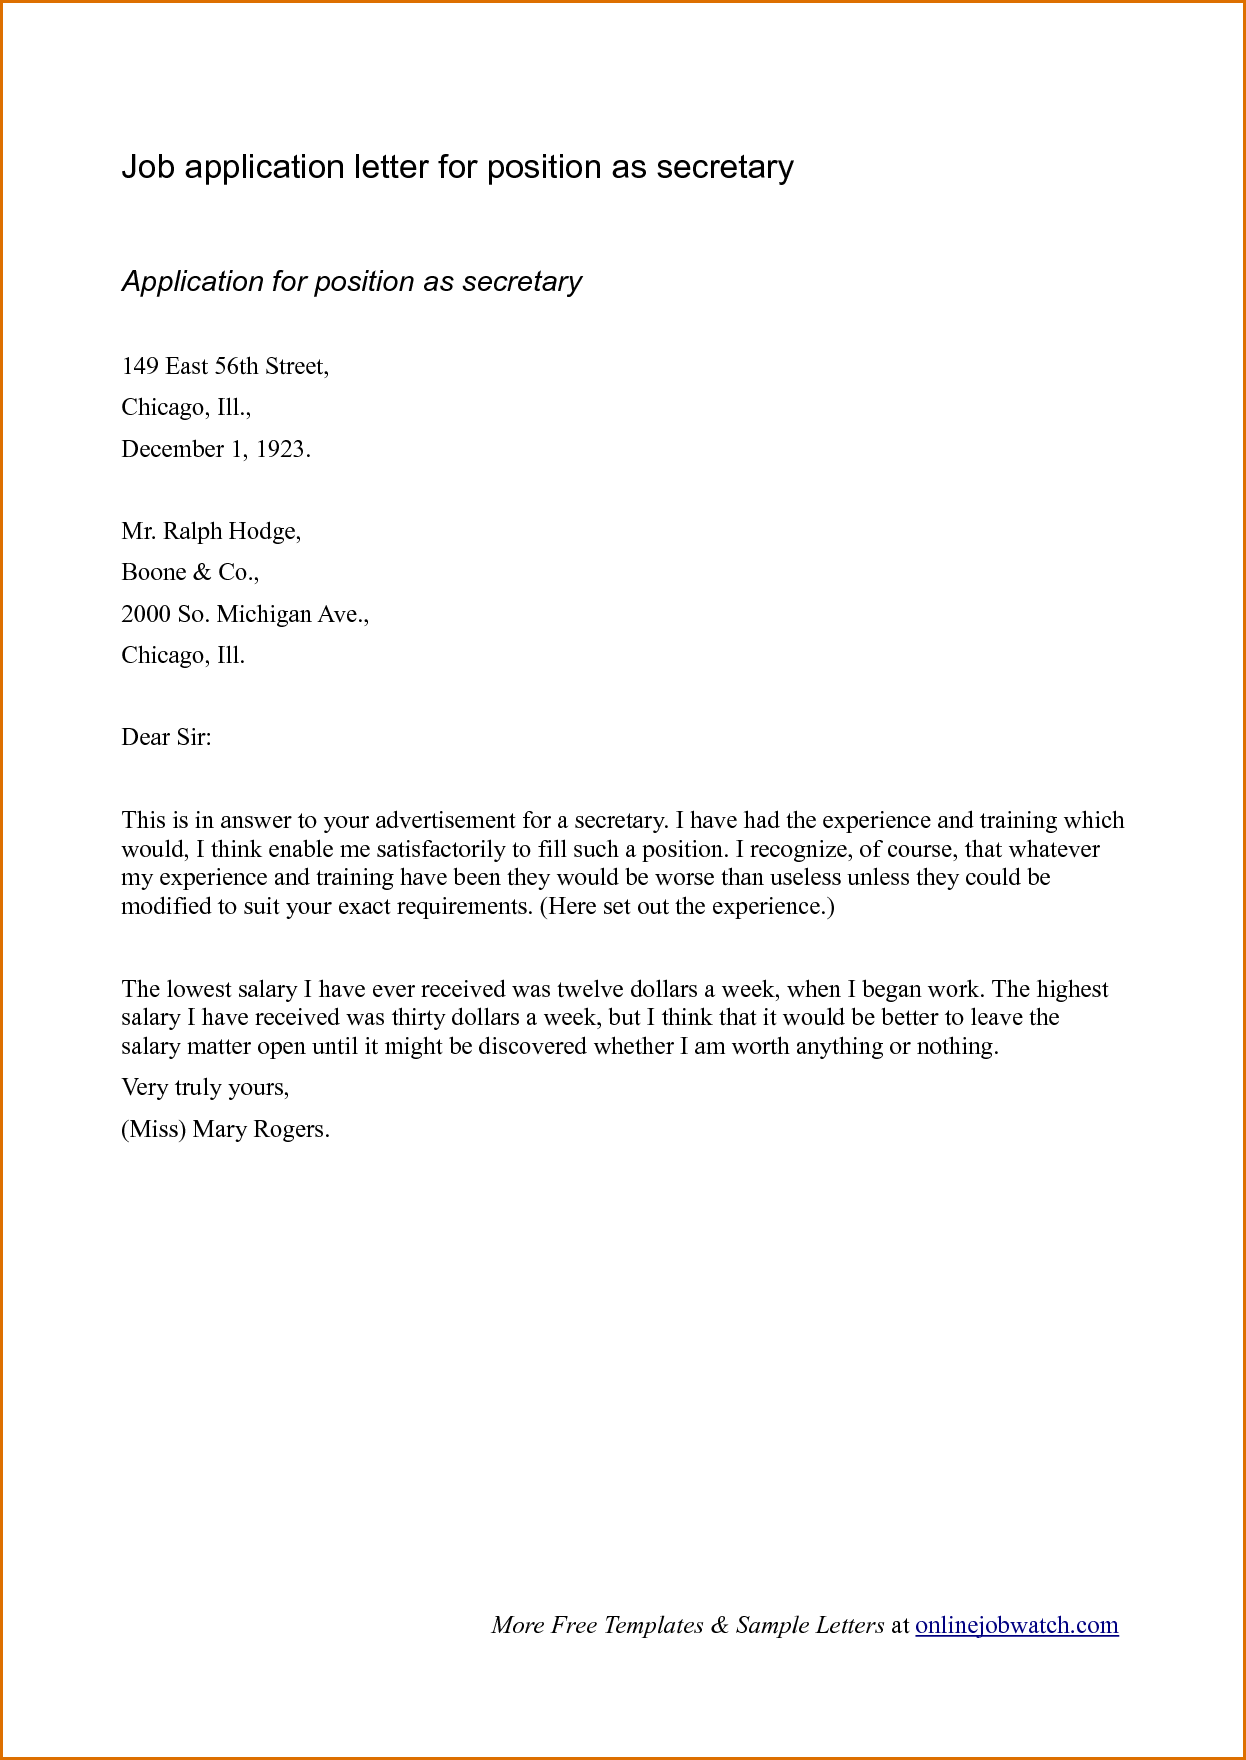 Sample cover letter format for job application for What to write in a cover letter for job application